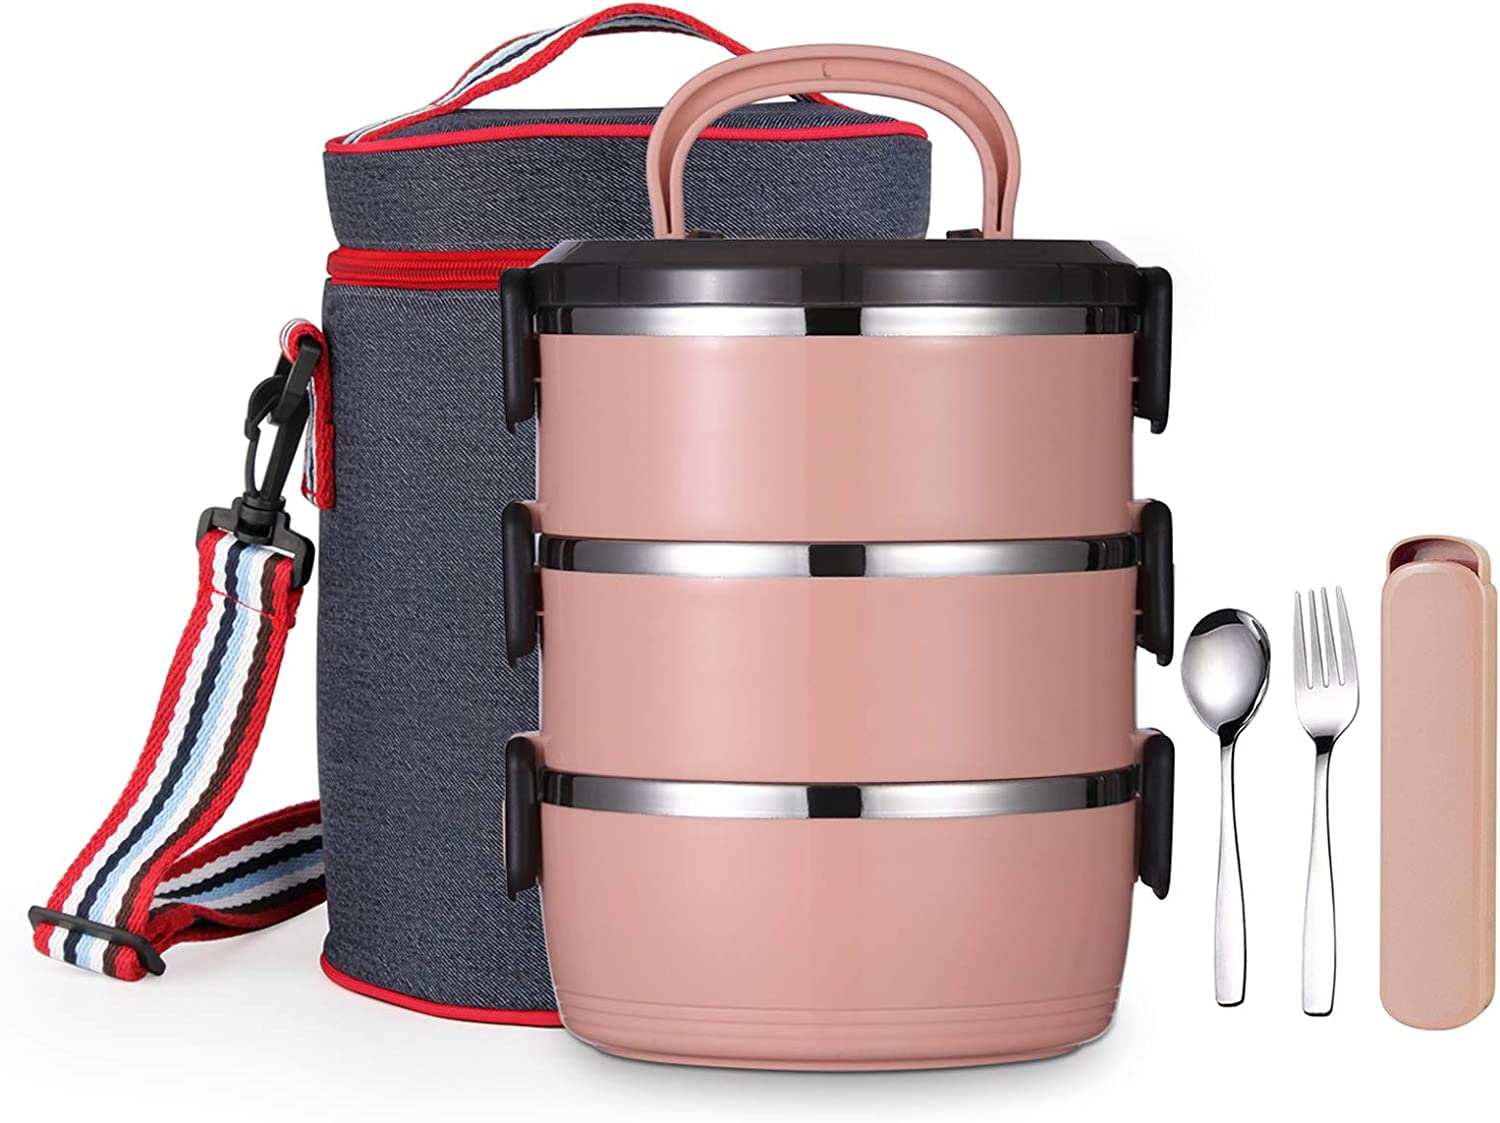 YBOBK HOME Bento Lunch Box, Stackable Insulated Leak Proof Stainless Steel Metal Portable Cylinder All-in-one Lunch Container with Lunch Bag Spoon and Fork for Adults (Coral Red)